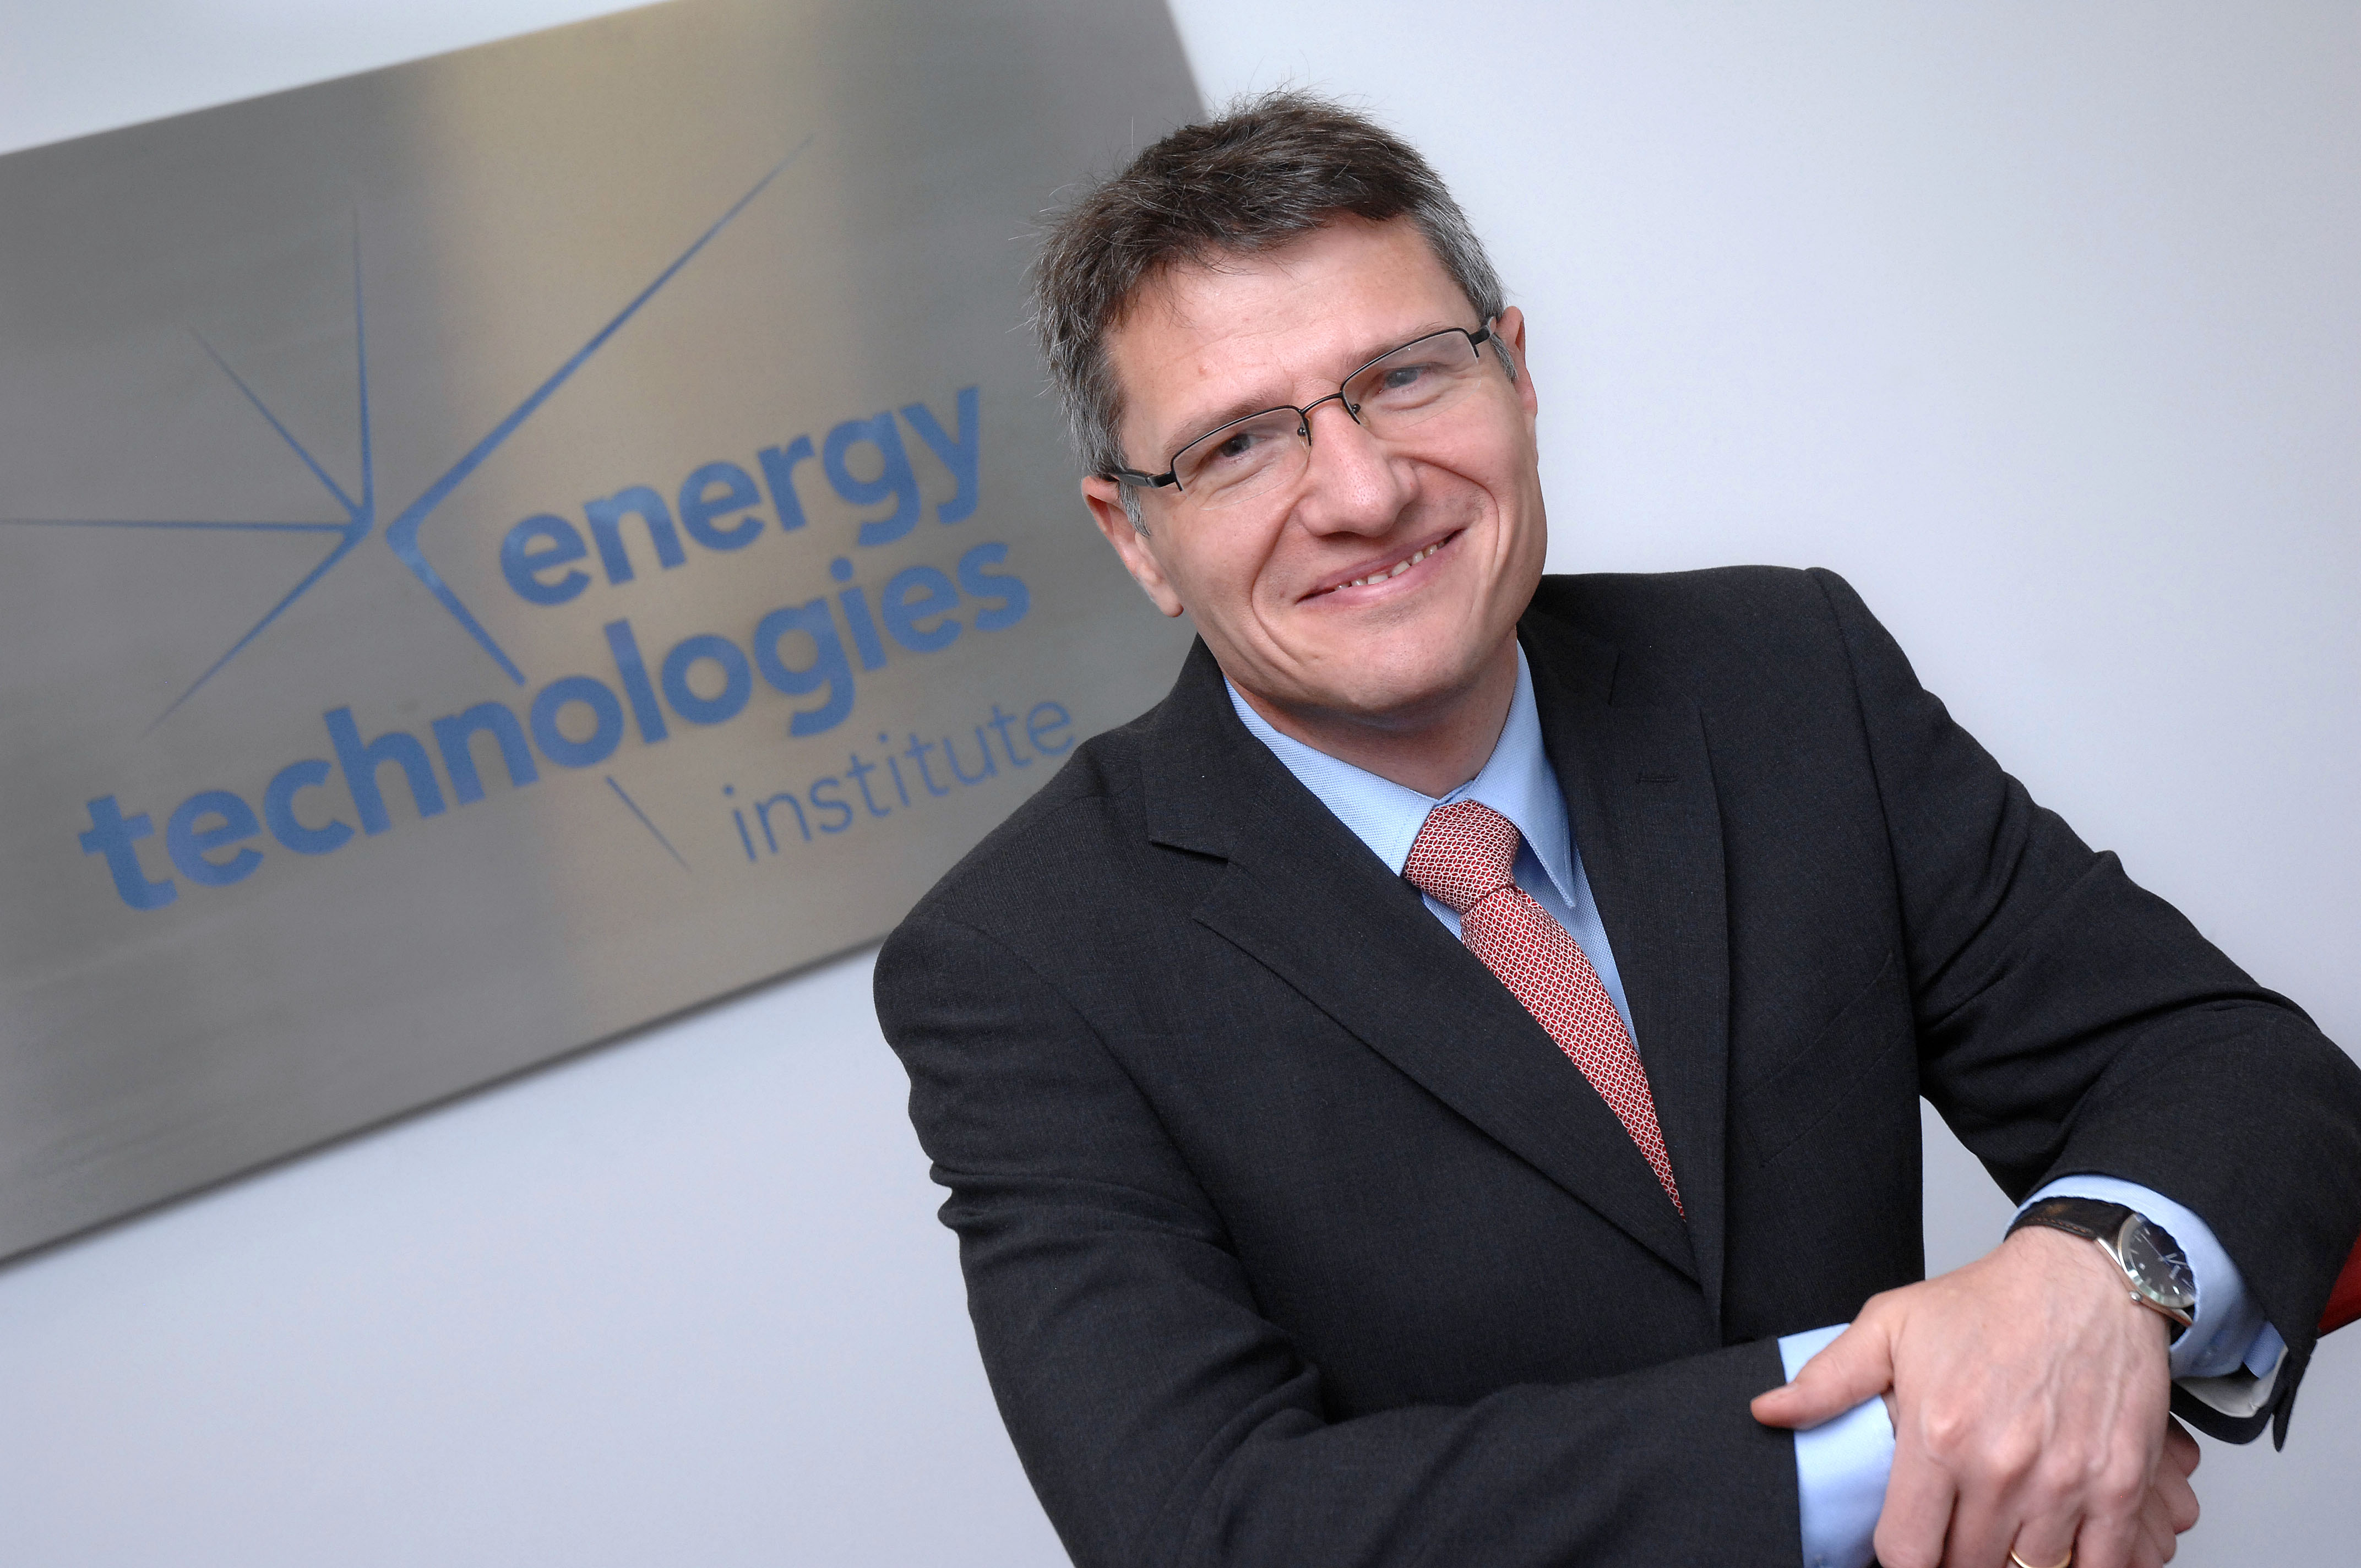 George Day presents 'The future role of CCS in UK decarbonisation'